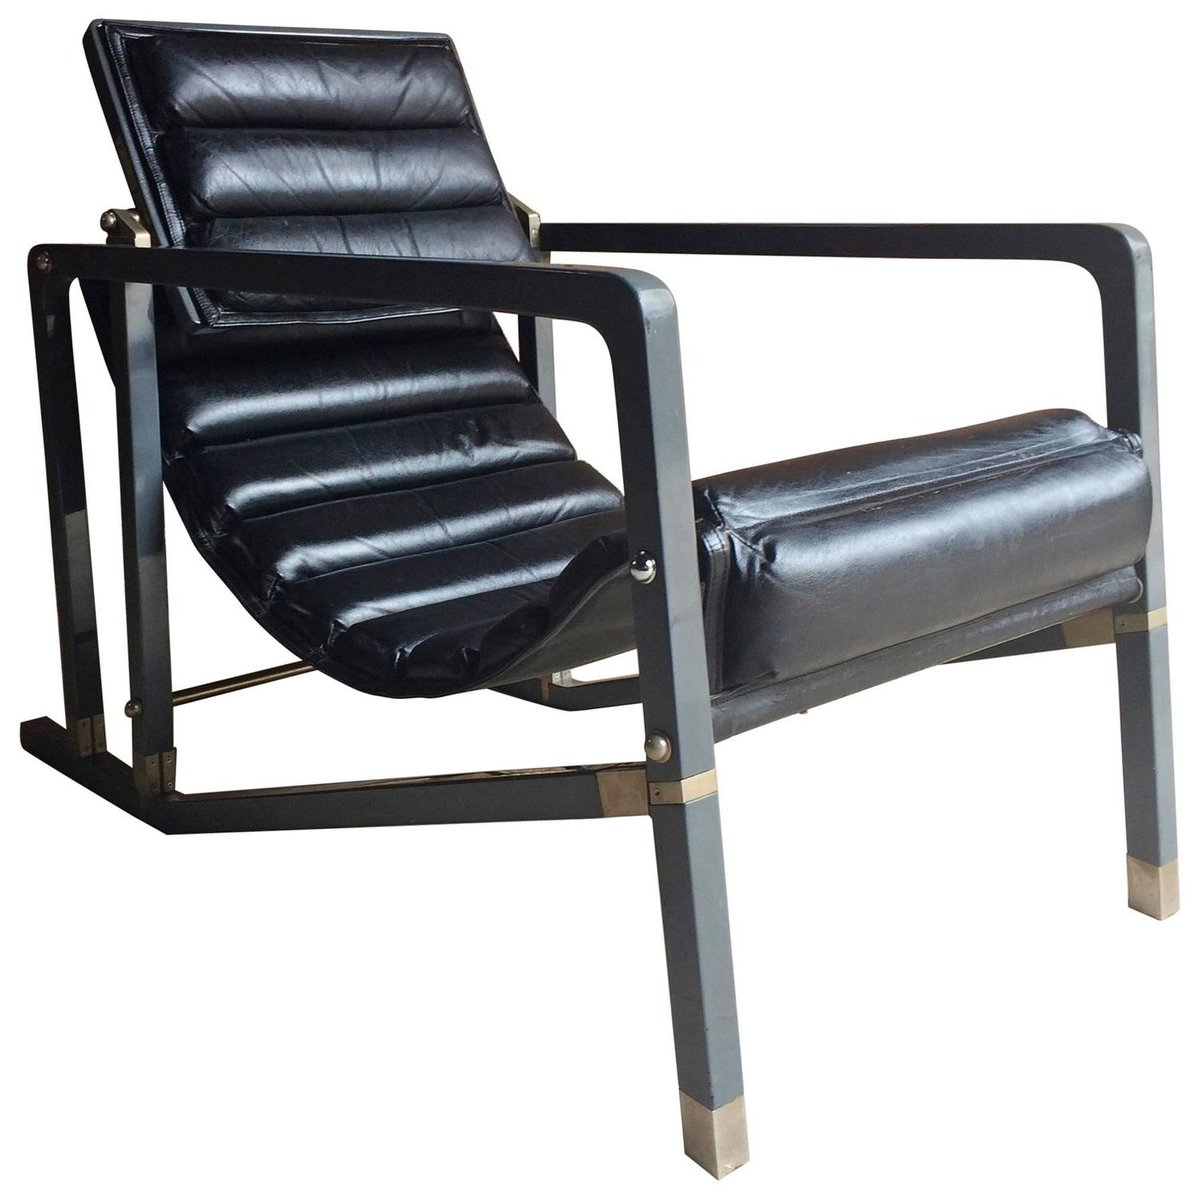 Vintage Transat Lounge Chair by Eileen Gray for Aram for sale at Pamono